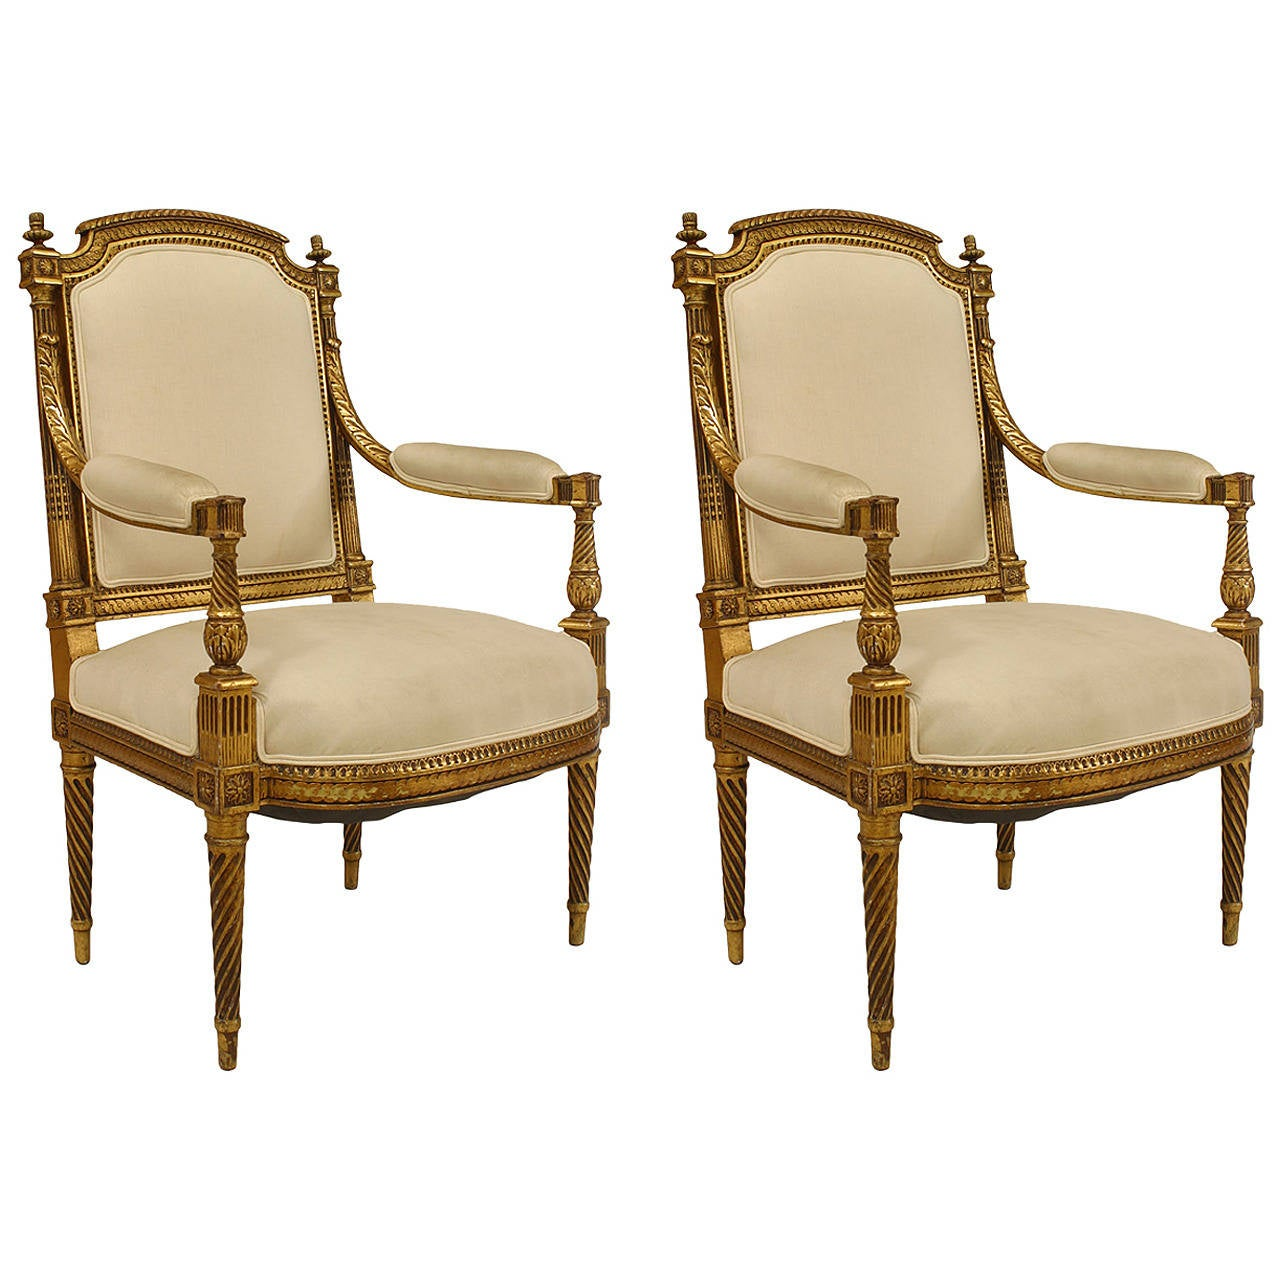 Pair of 19th Century French Louis XVI Gilt Carved Armchairs